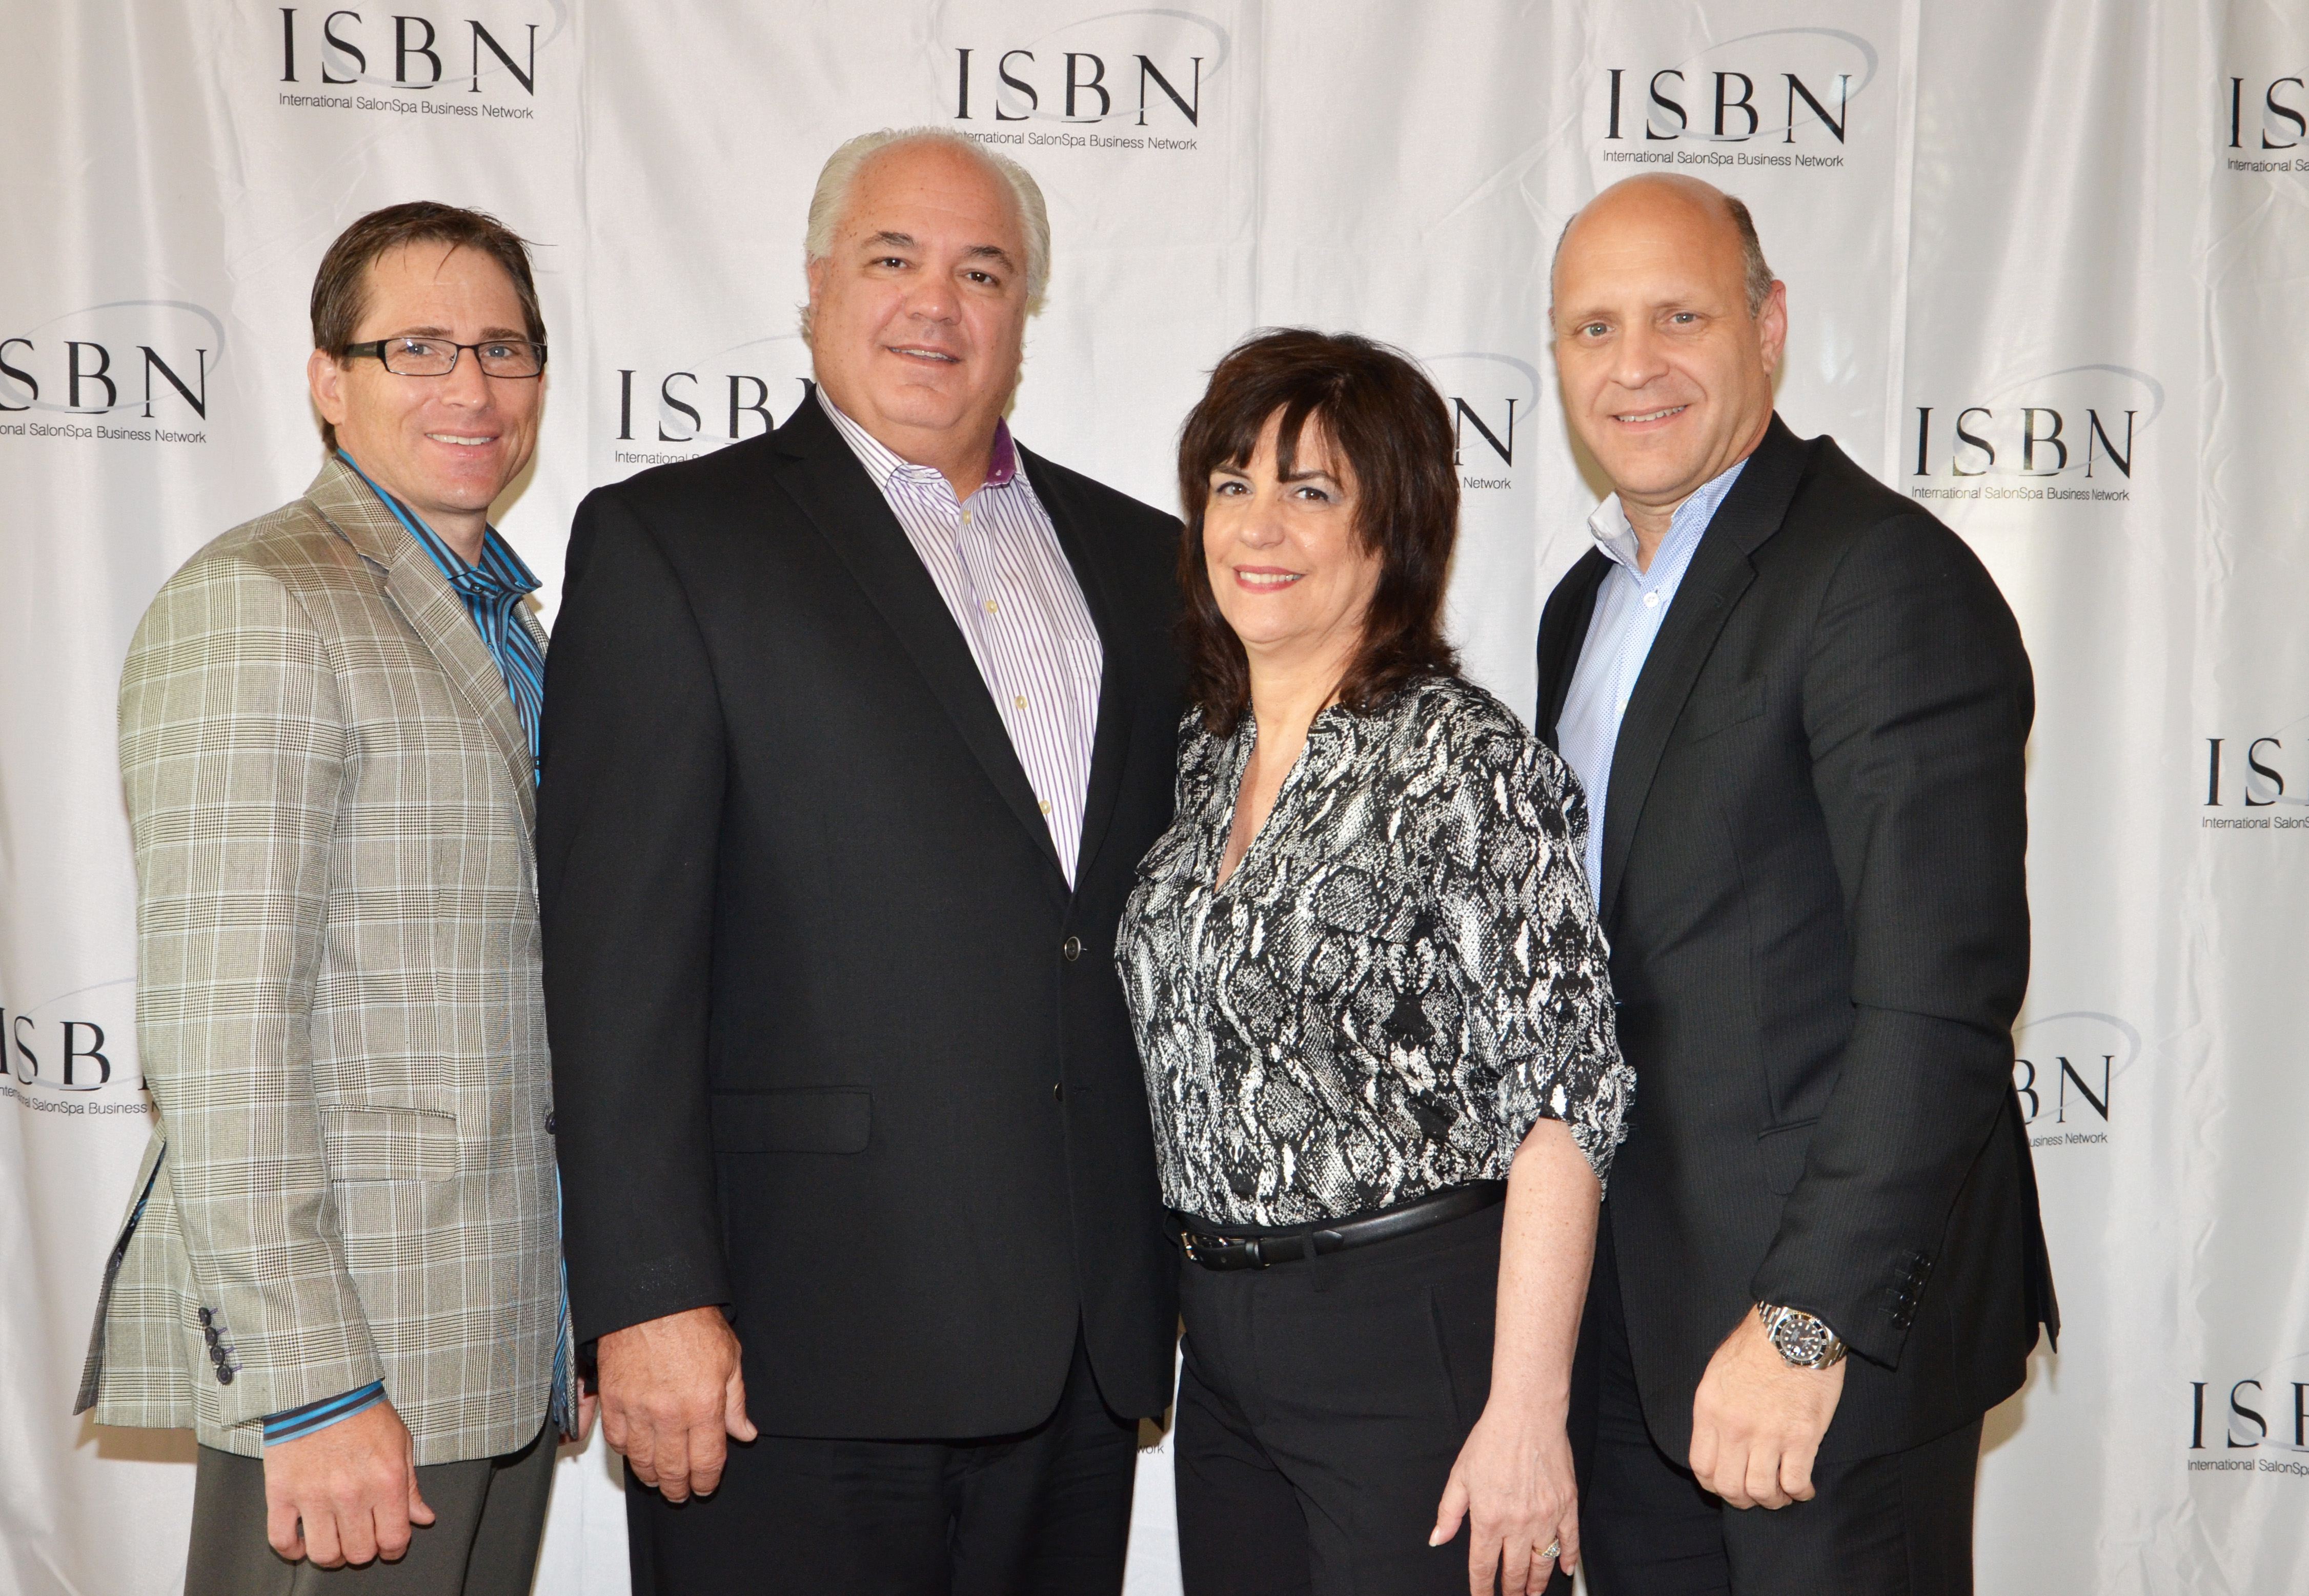 ISBN Explores The Business of Being Social at Annual Conference